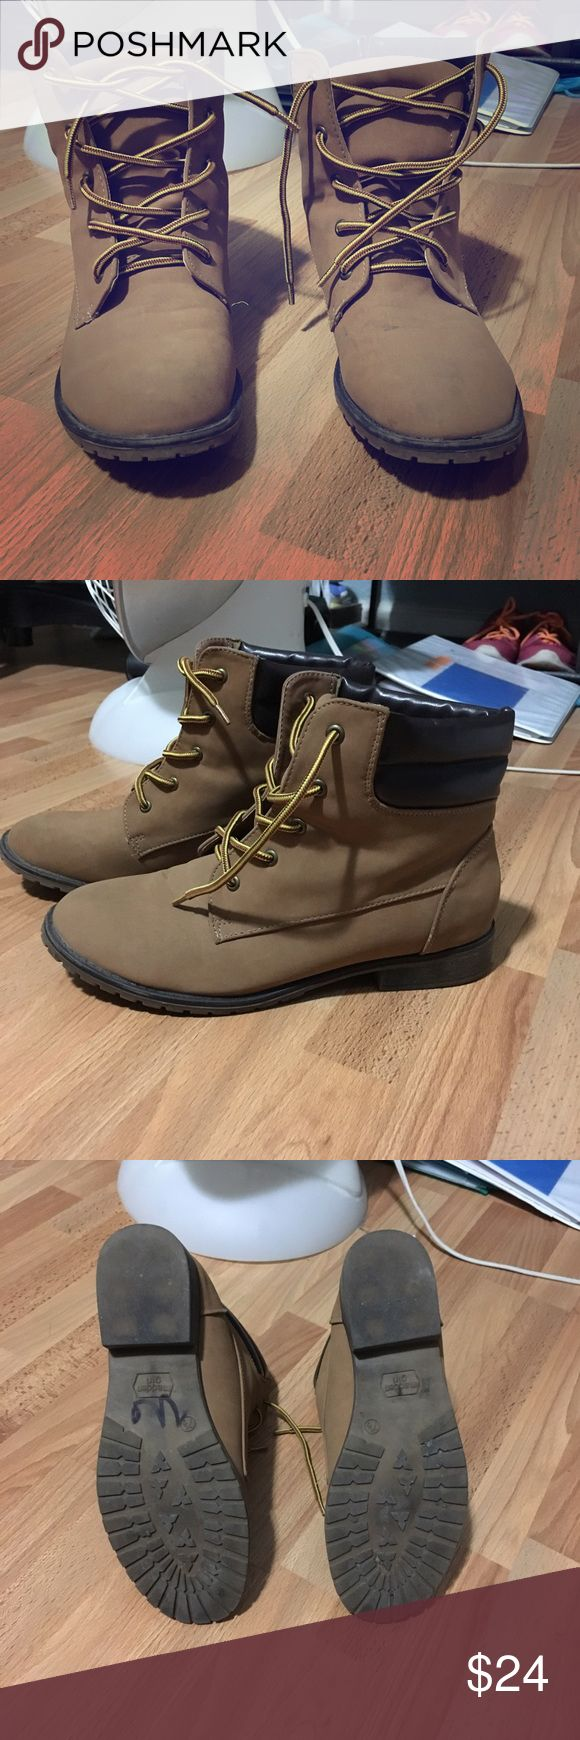 Madden girl timberland style brown tan laced boots Great condition and style but too small for me so hardly worn Madden Girl Shoes Ankle Boots & Booties